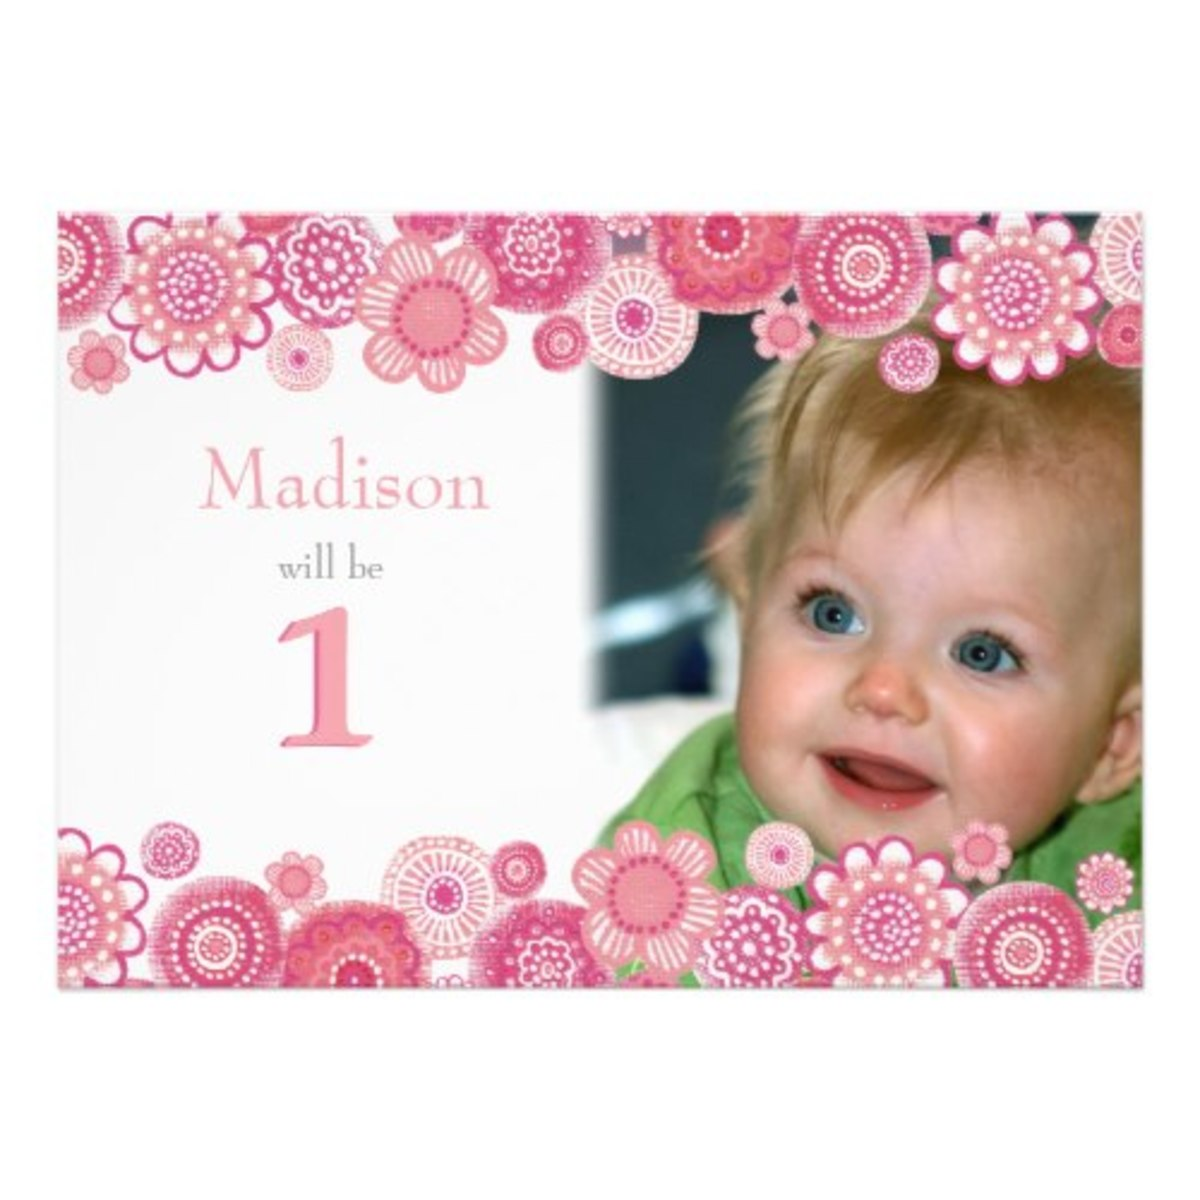 Check out my Pip Pip Hooray Store for lots of Pink invitations and stationery that can be personalized!!